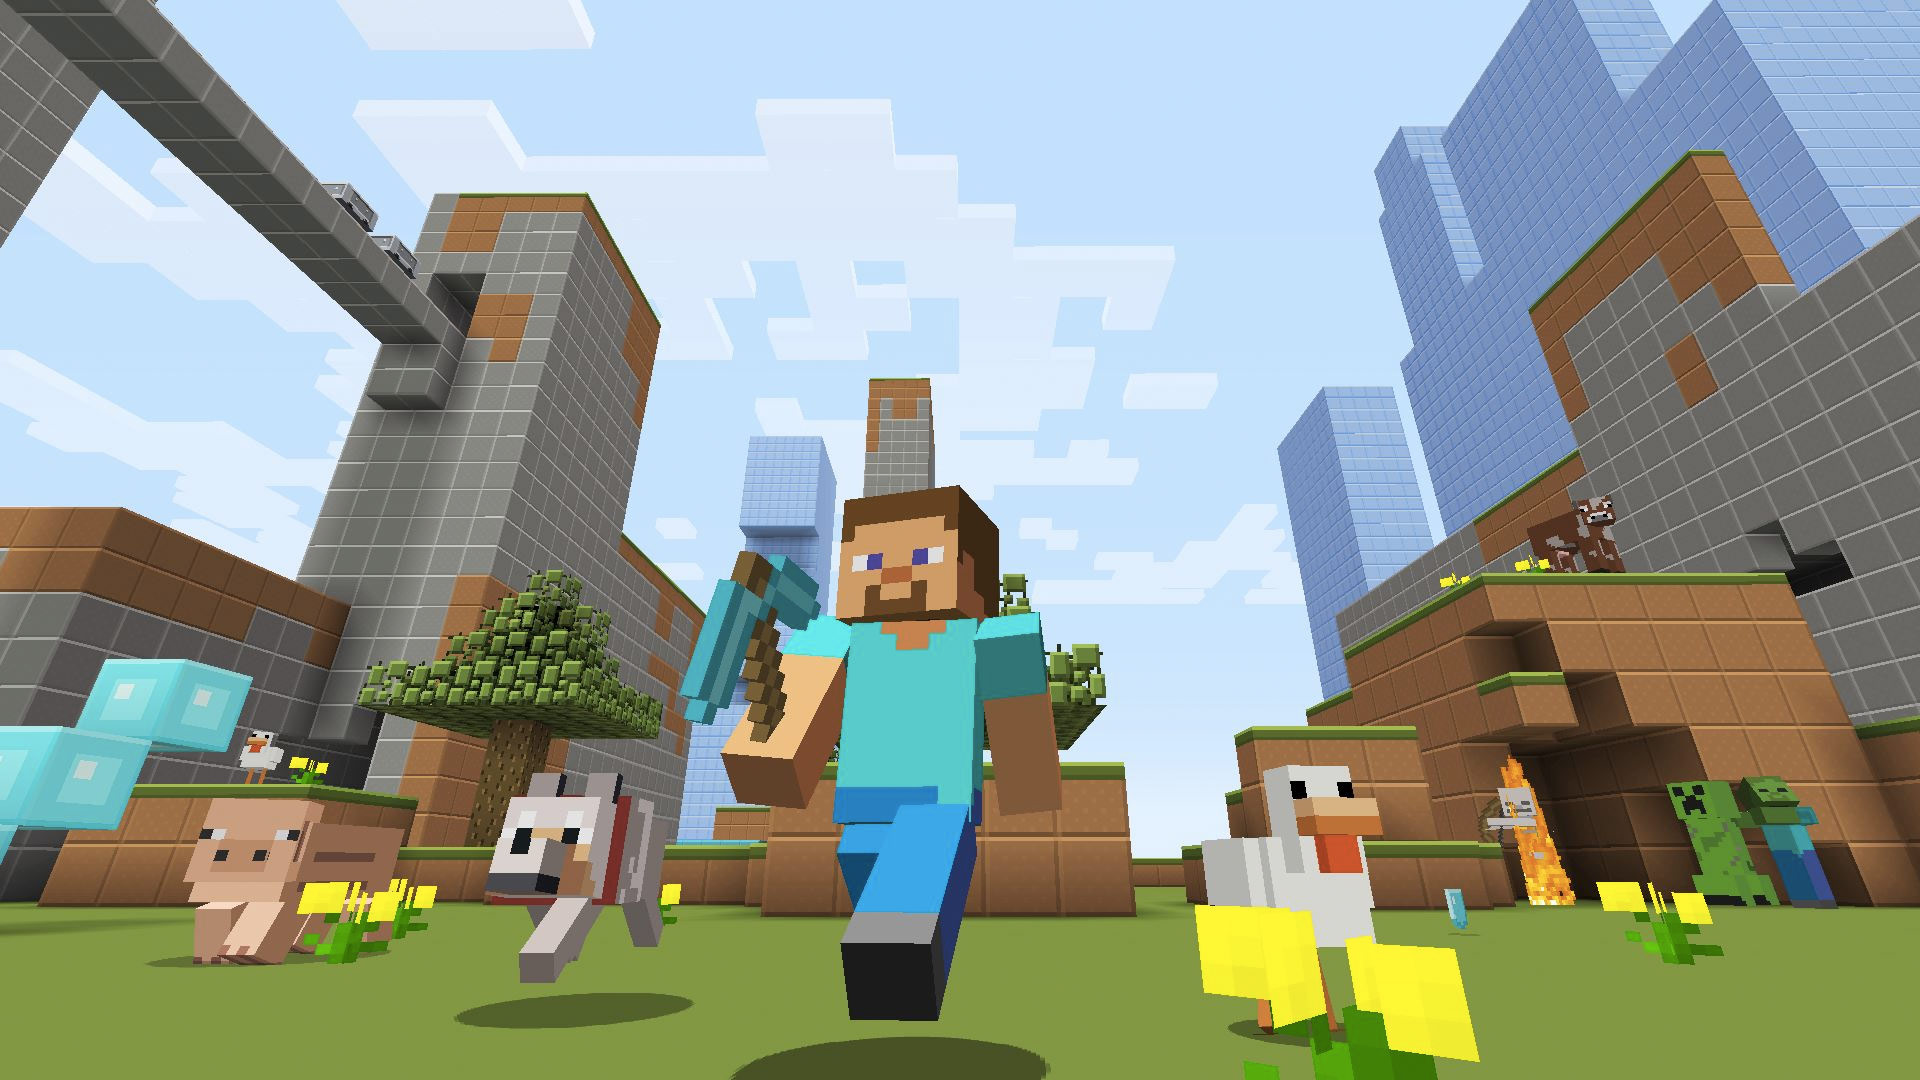 Minecraft to get an episodic, story-based game from Telltale Games